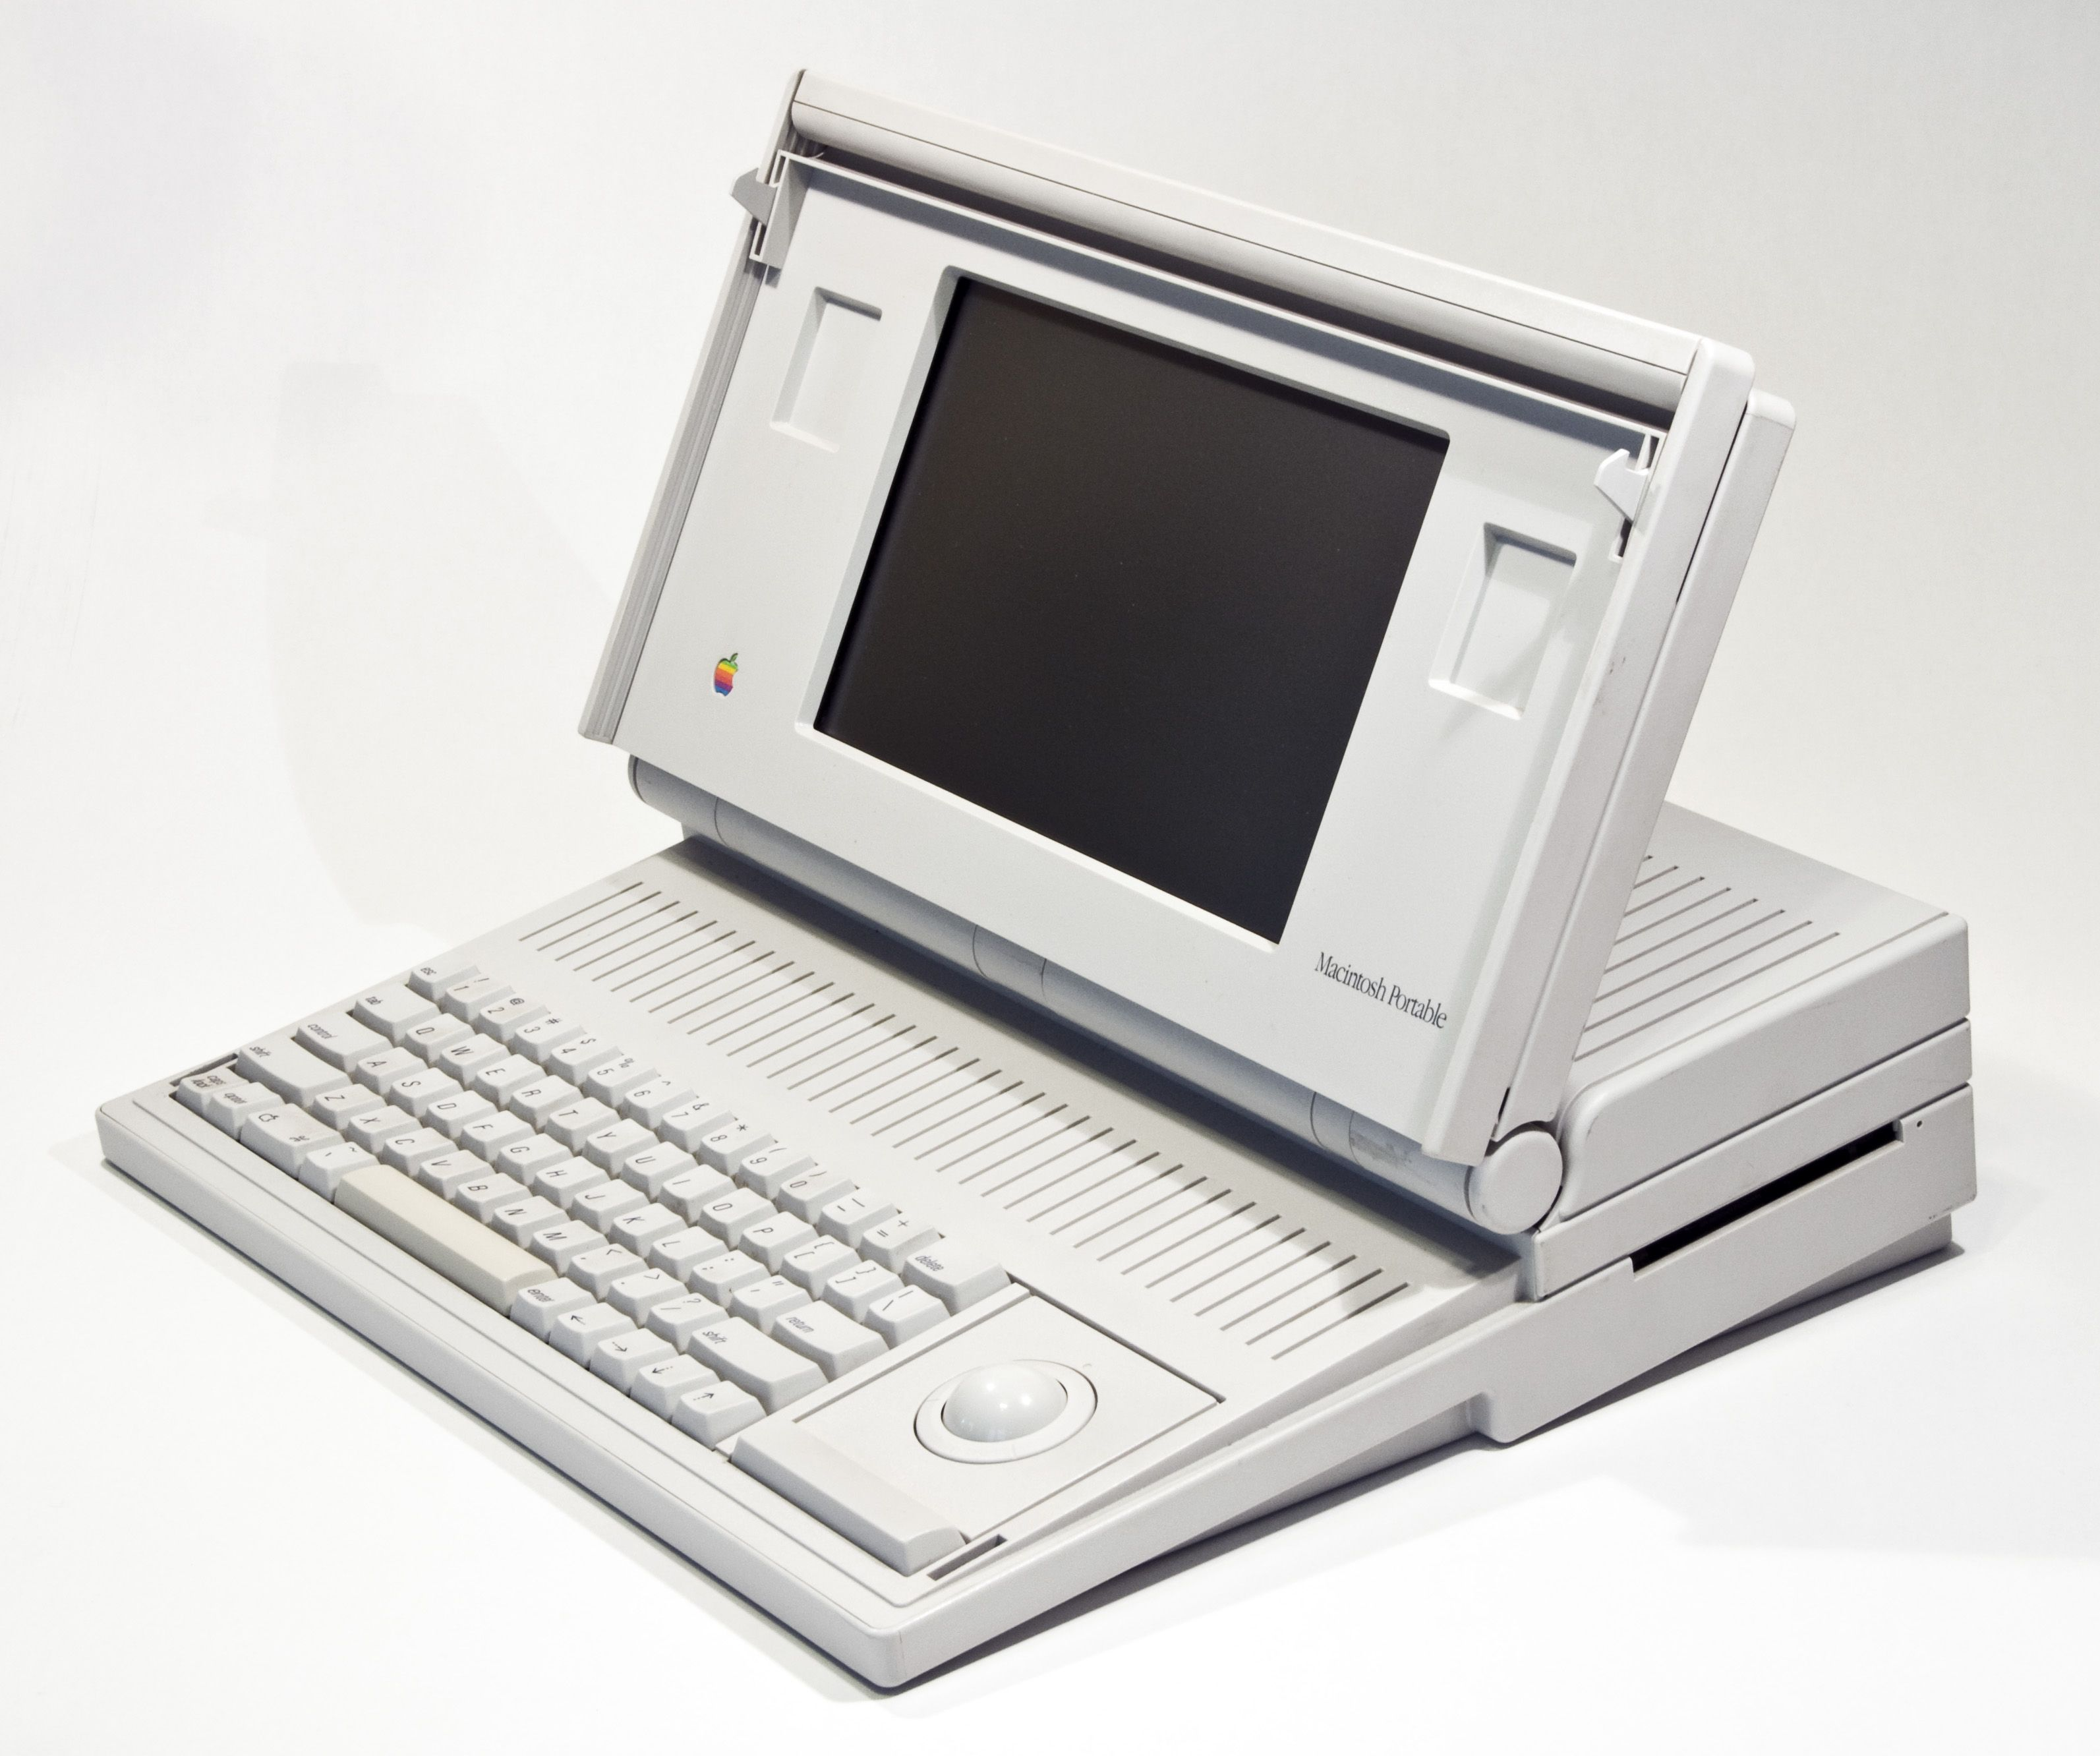 1987 Macintosh Portable First Portable Computer Produced By Colby Systems Way Before Apple Produces His F Apple Computer Apple Computer Laptop Apple Macintosh